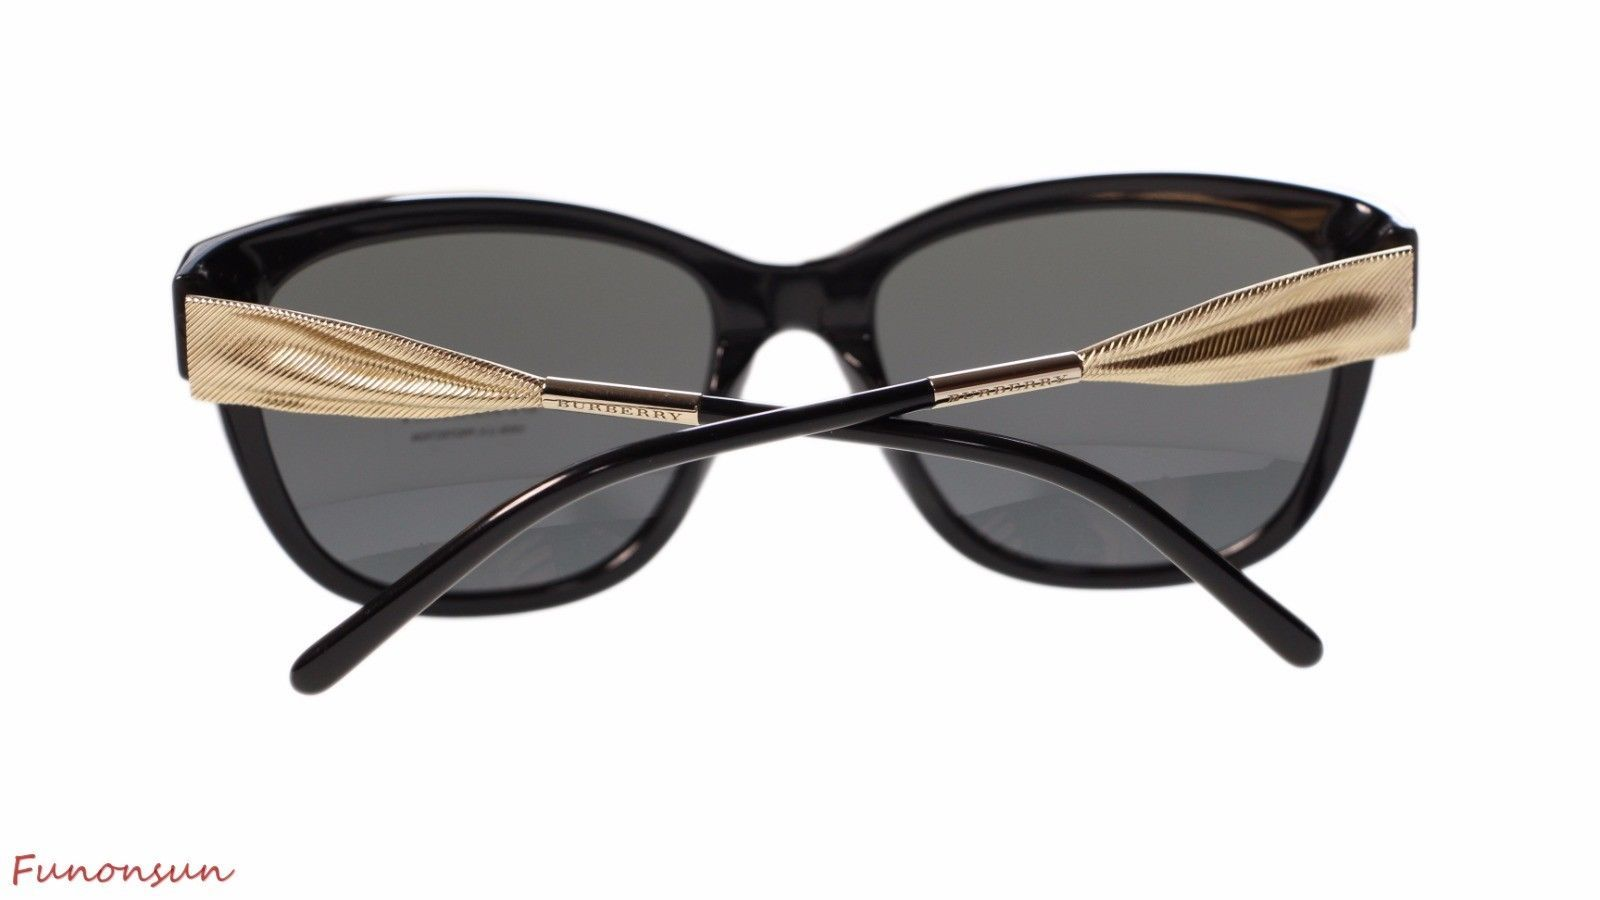 a87cc7aa4b Burberry Women s Sunglasses BE4203 300187 Black Gold Grey Lens Cat Eye  Authentic